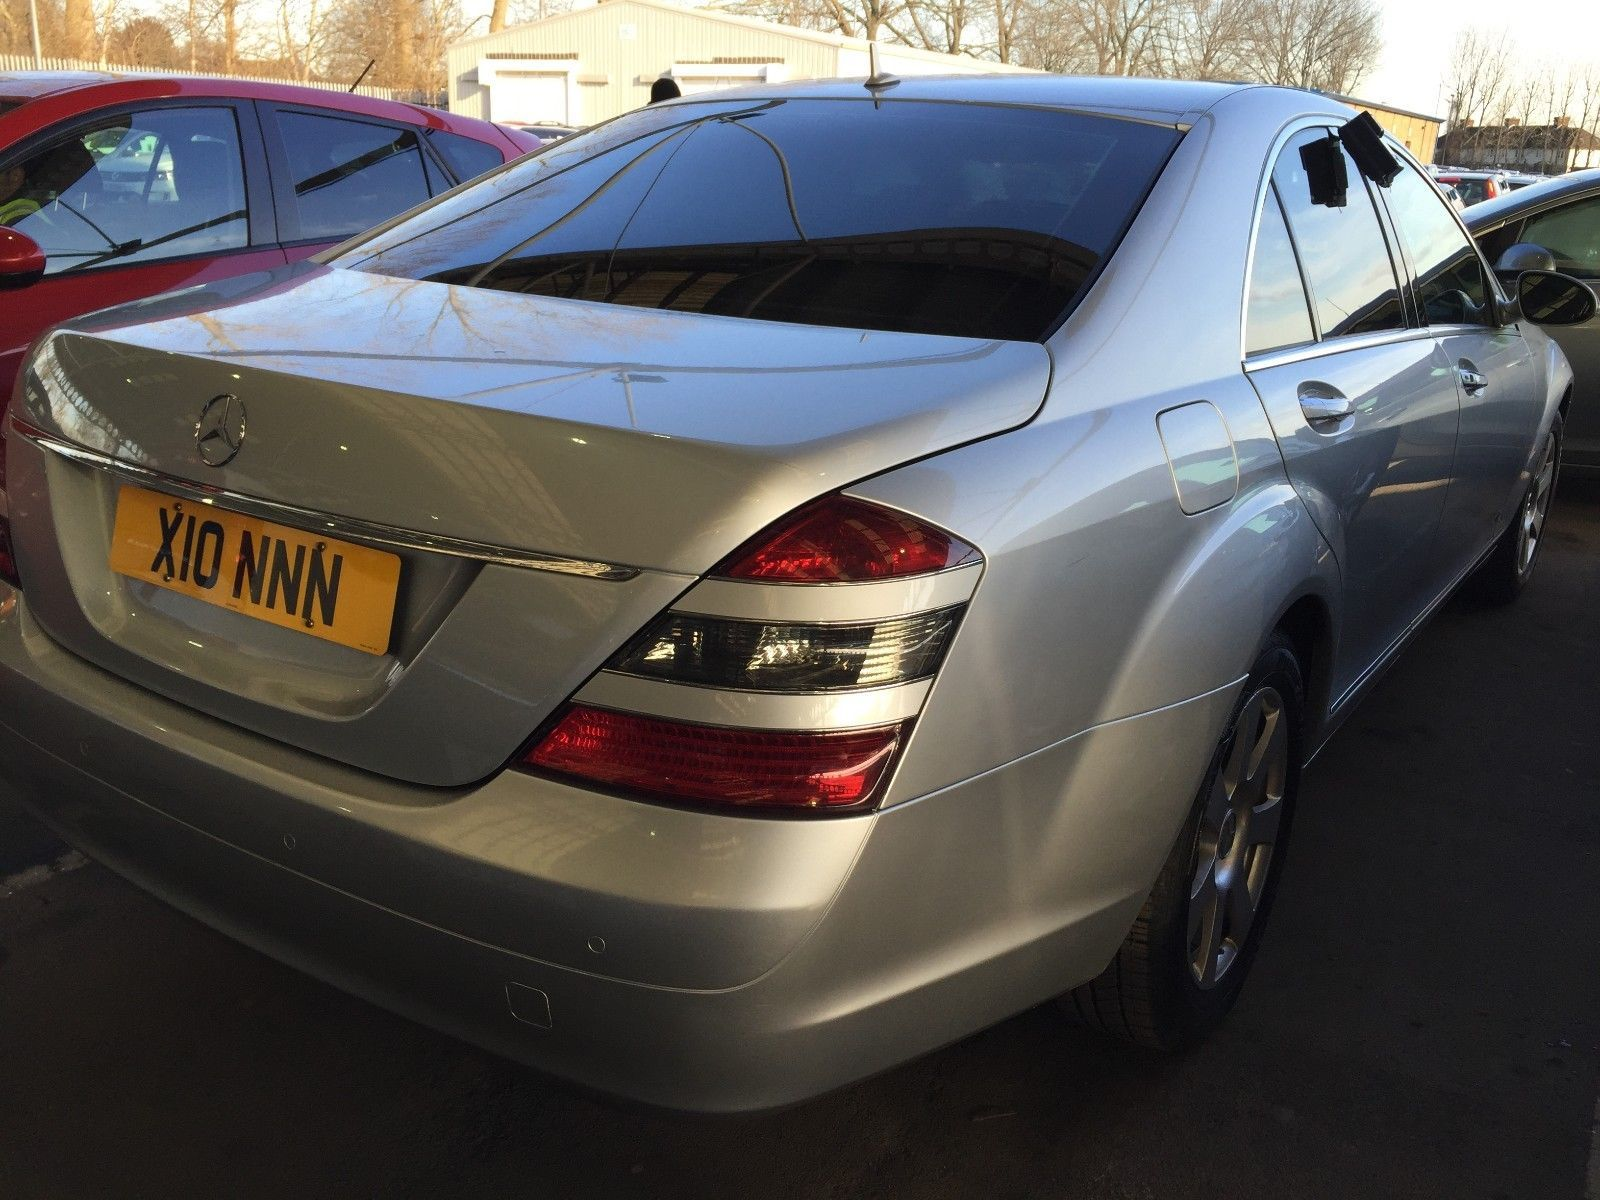 06 mercedes s320 3 0 cdi spares or repair drives but stops when